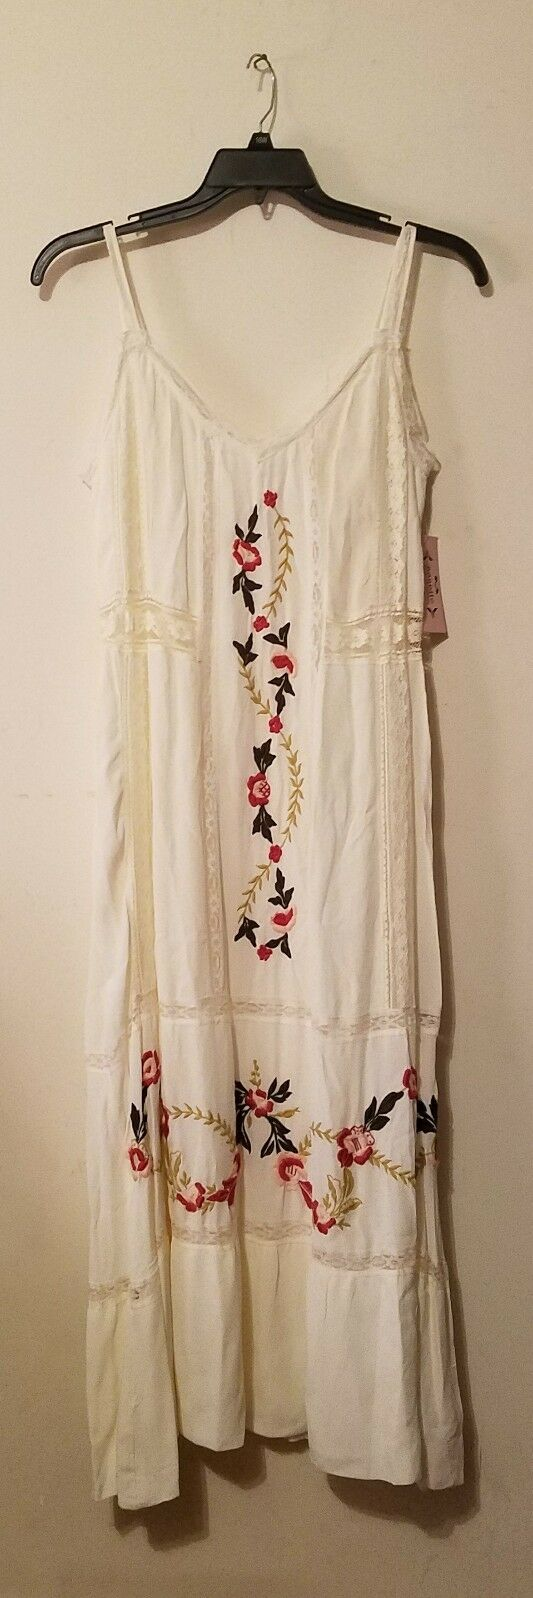 Nanette Nanette Lepore   Embroidered Lace Trim Midi Dress White  Sz 8